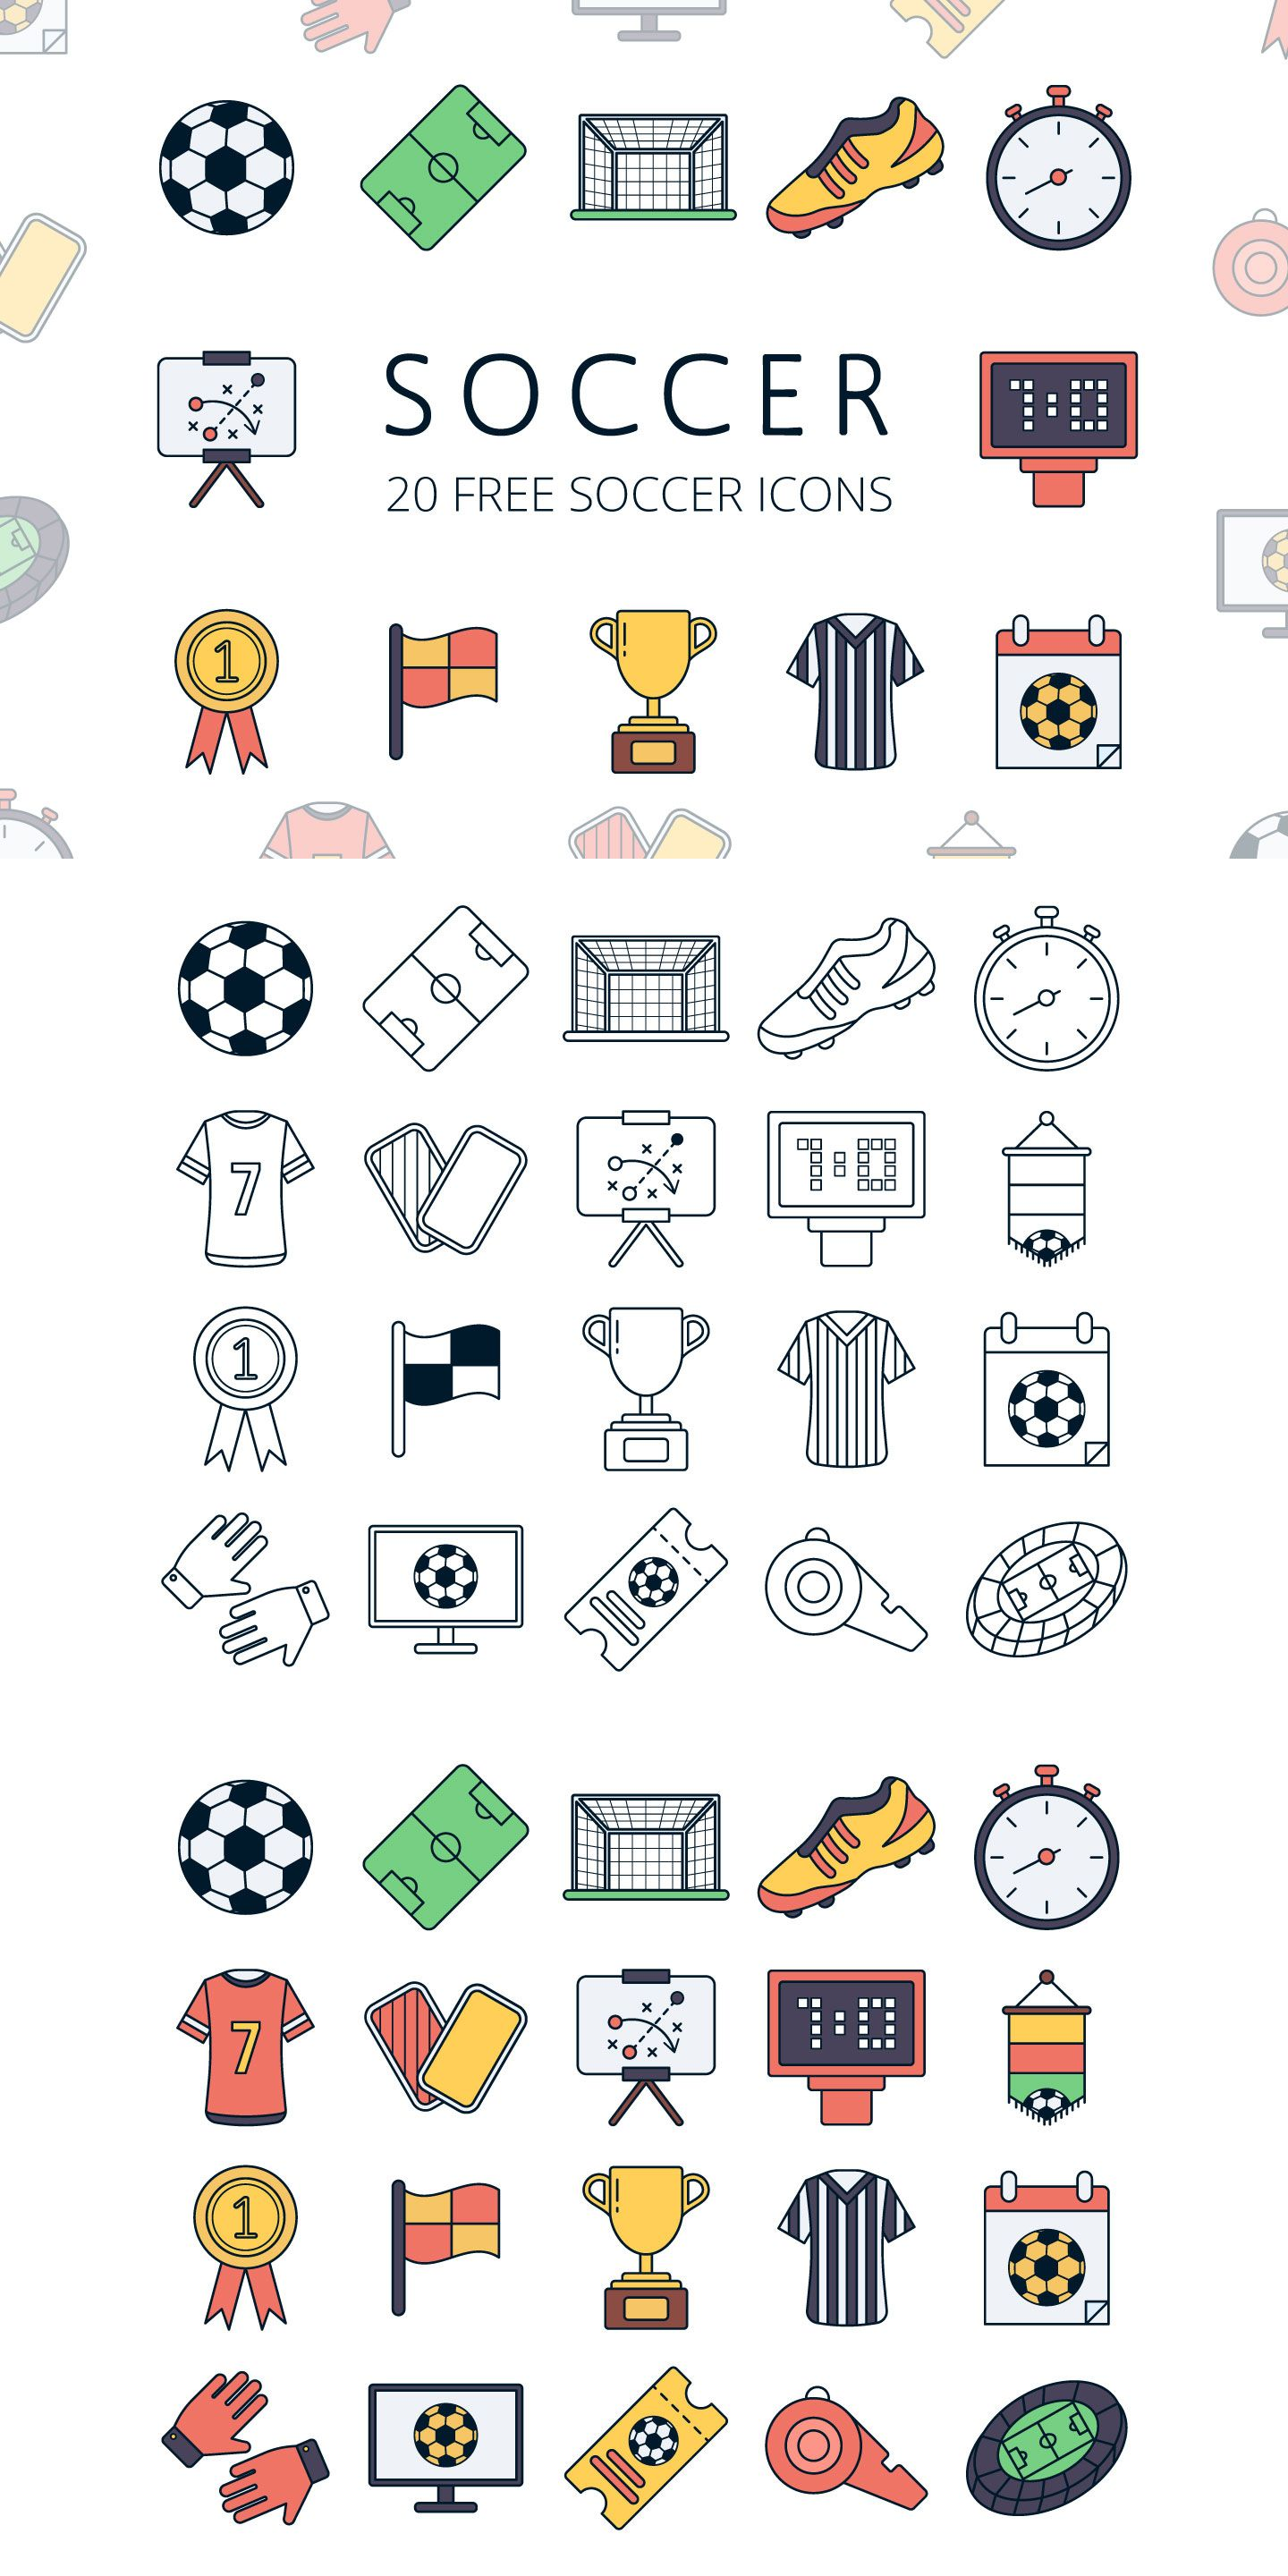 Soccer Vector Free Icon Set in 2020 Vector free, Easy